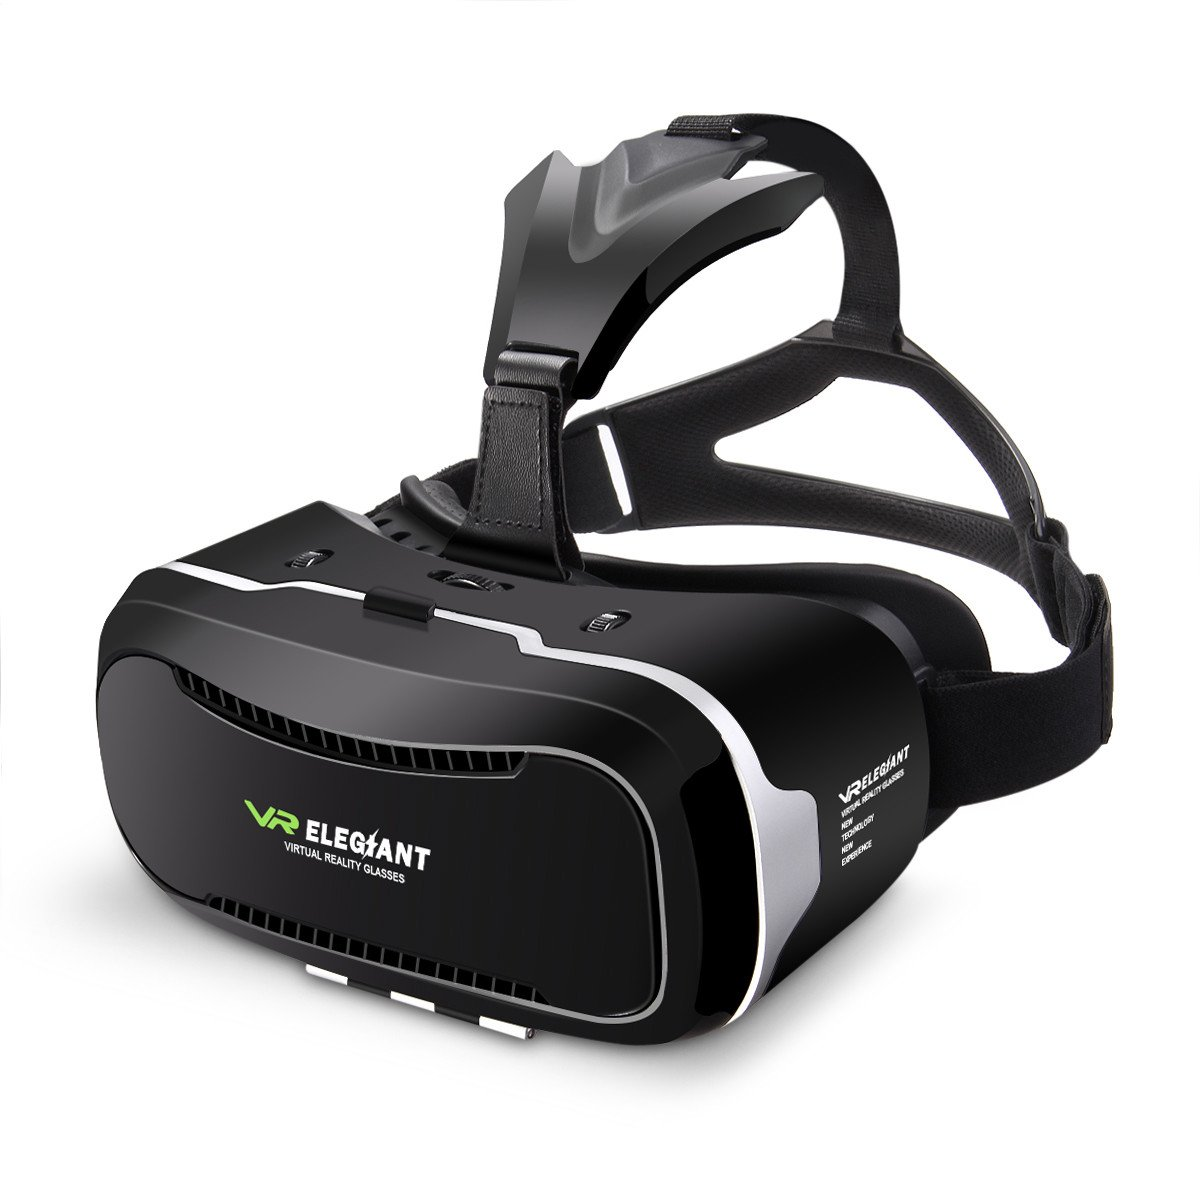 Virtual Reality Headset, ELEGIANT 3D VR Glasses Virtual Reality Box for 3D Movies Video Games for iPhone 8 7 6 6s Plus Samsung S8 S7 S6 Edge S5 Note 5 and Other Smartphone - 2nd Generation VR Headset FBA_ELEGIANTFurmores3646